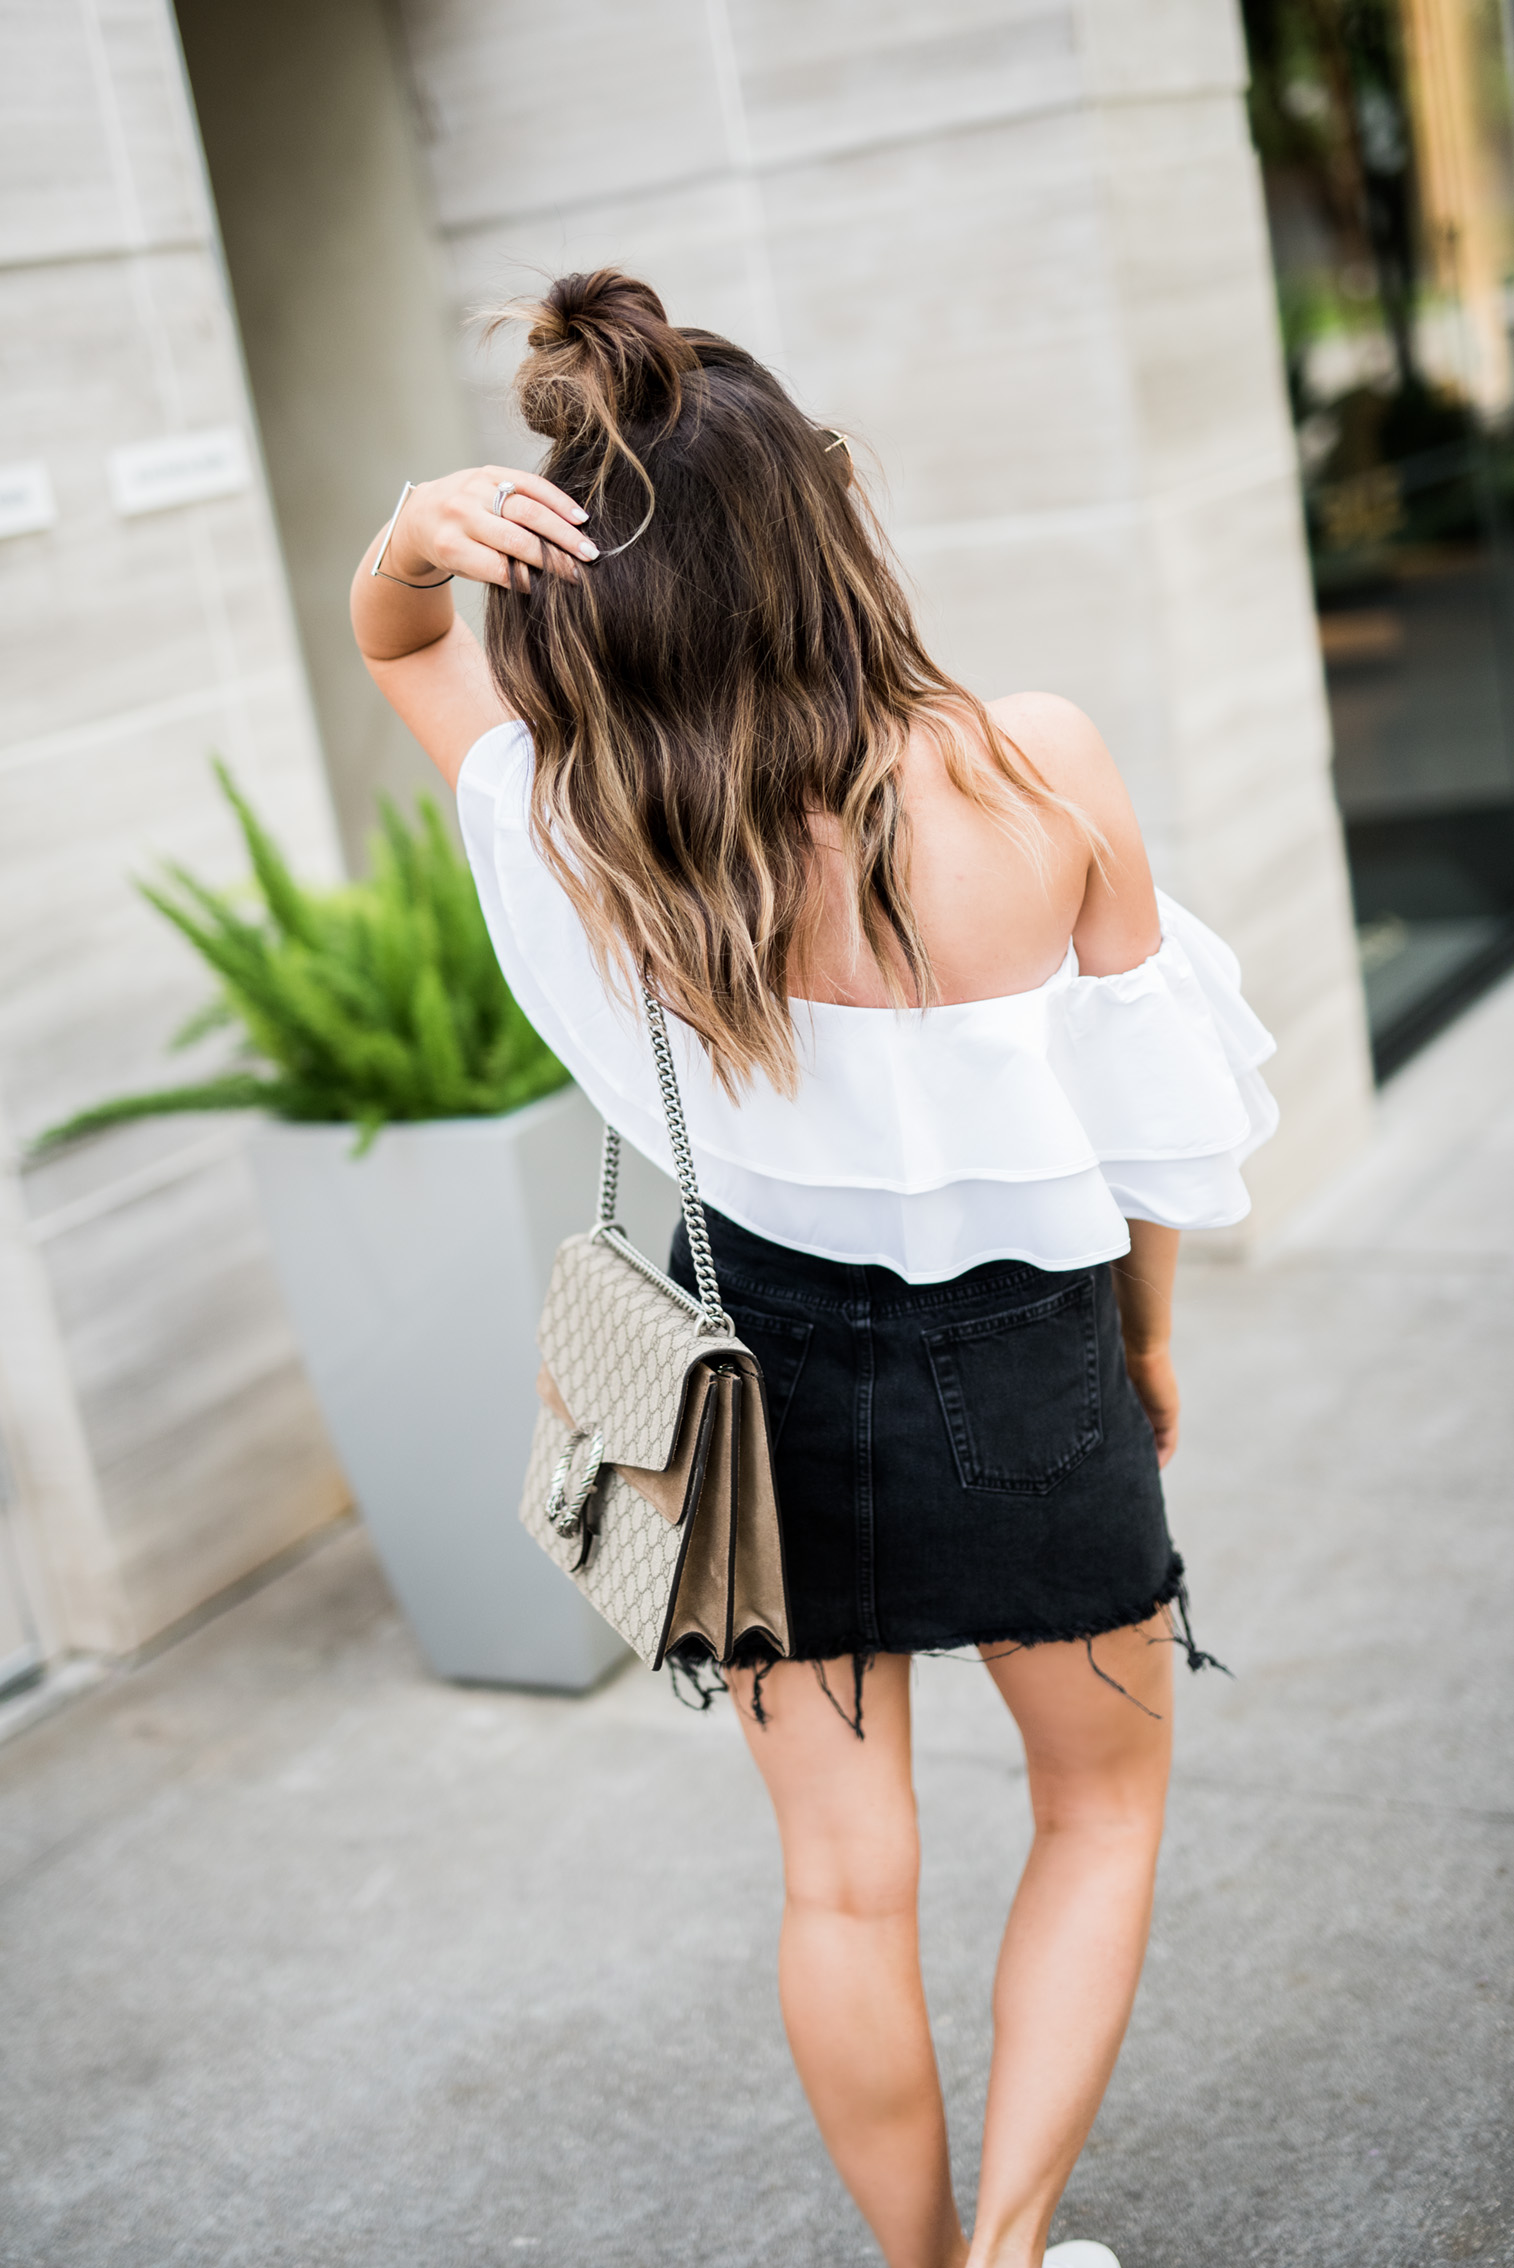 Tiffany Jais Houston fashion and lifestyle blogger | Ruffles | Embroidered sneakers, Gucci Dionysus bag, Ruffle top, Black denim skirt, casual outfit ideas, street style